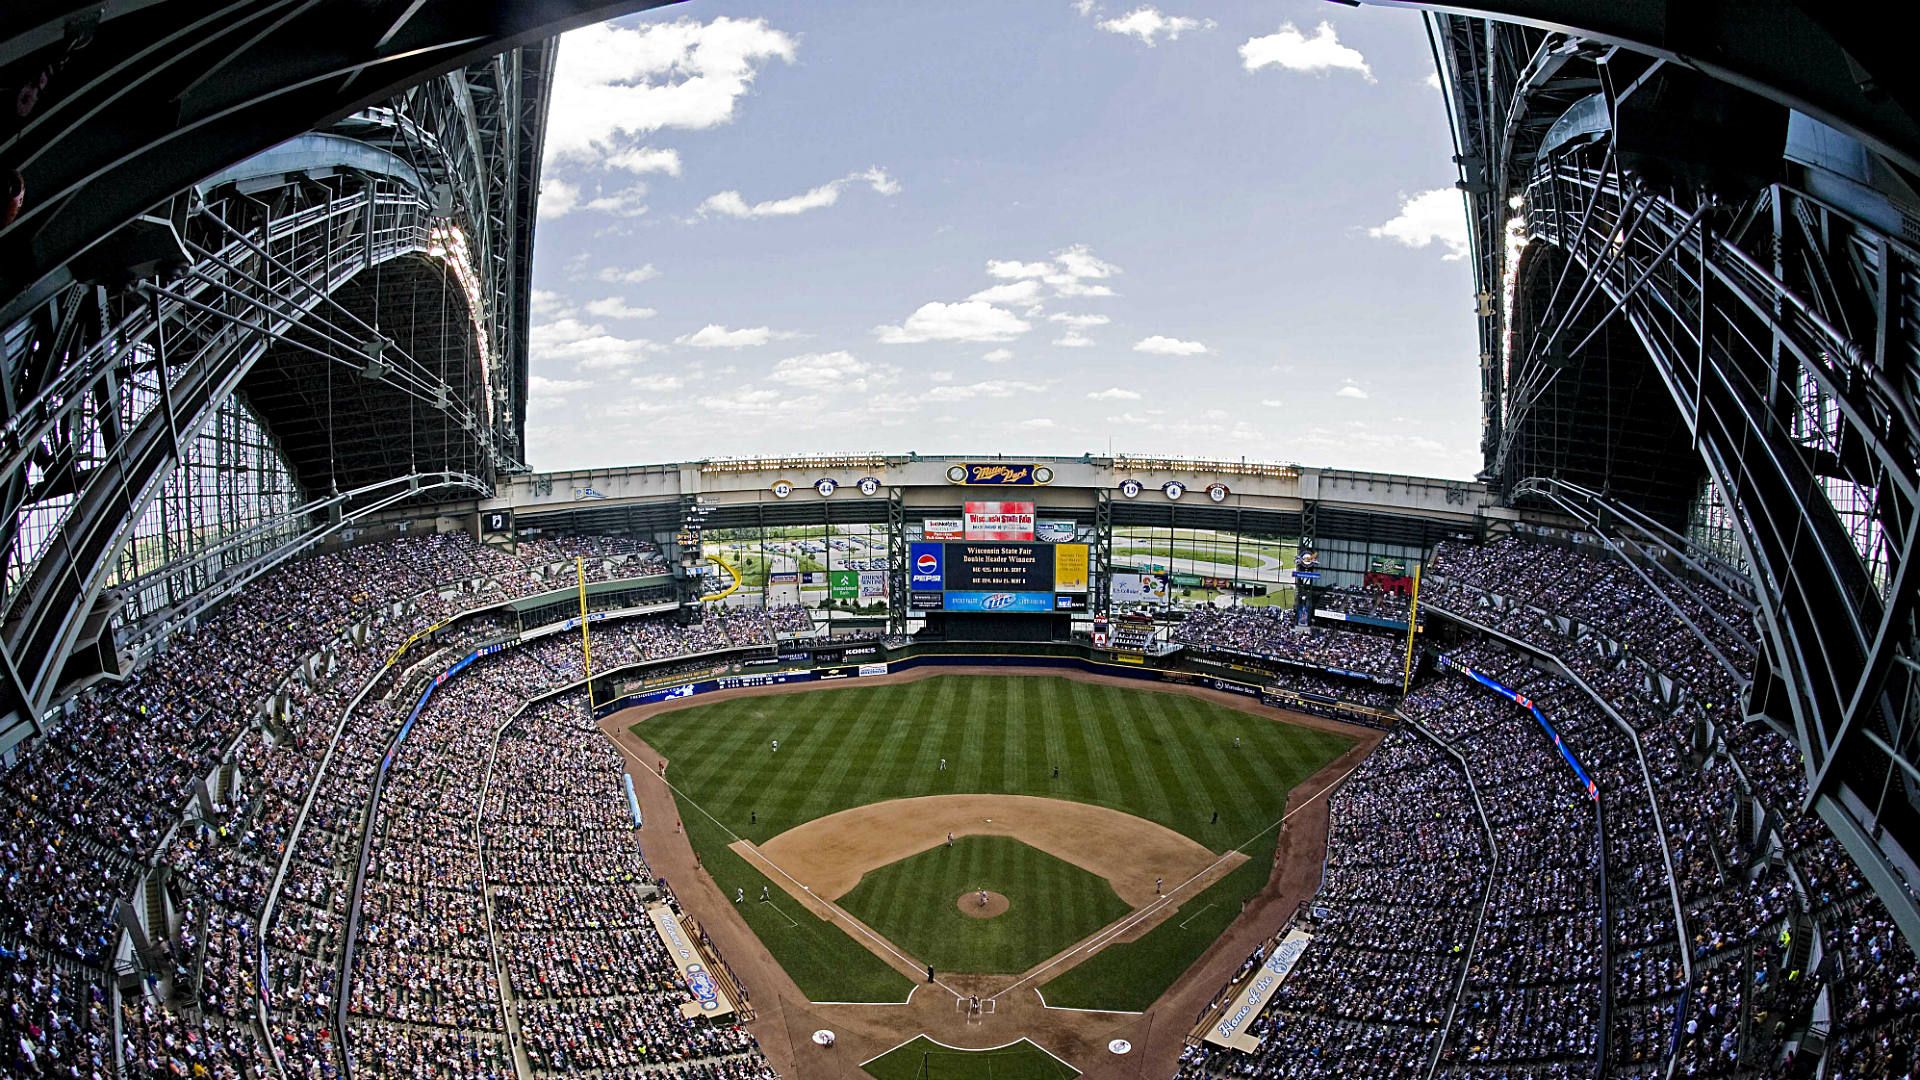 Despite drawbacks, Miller Park's retractable roof still is ...